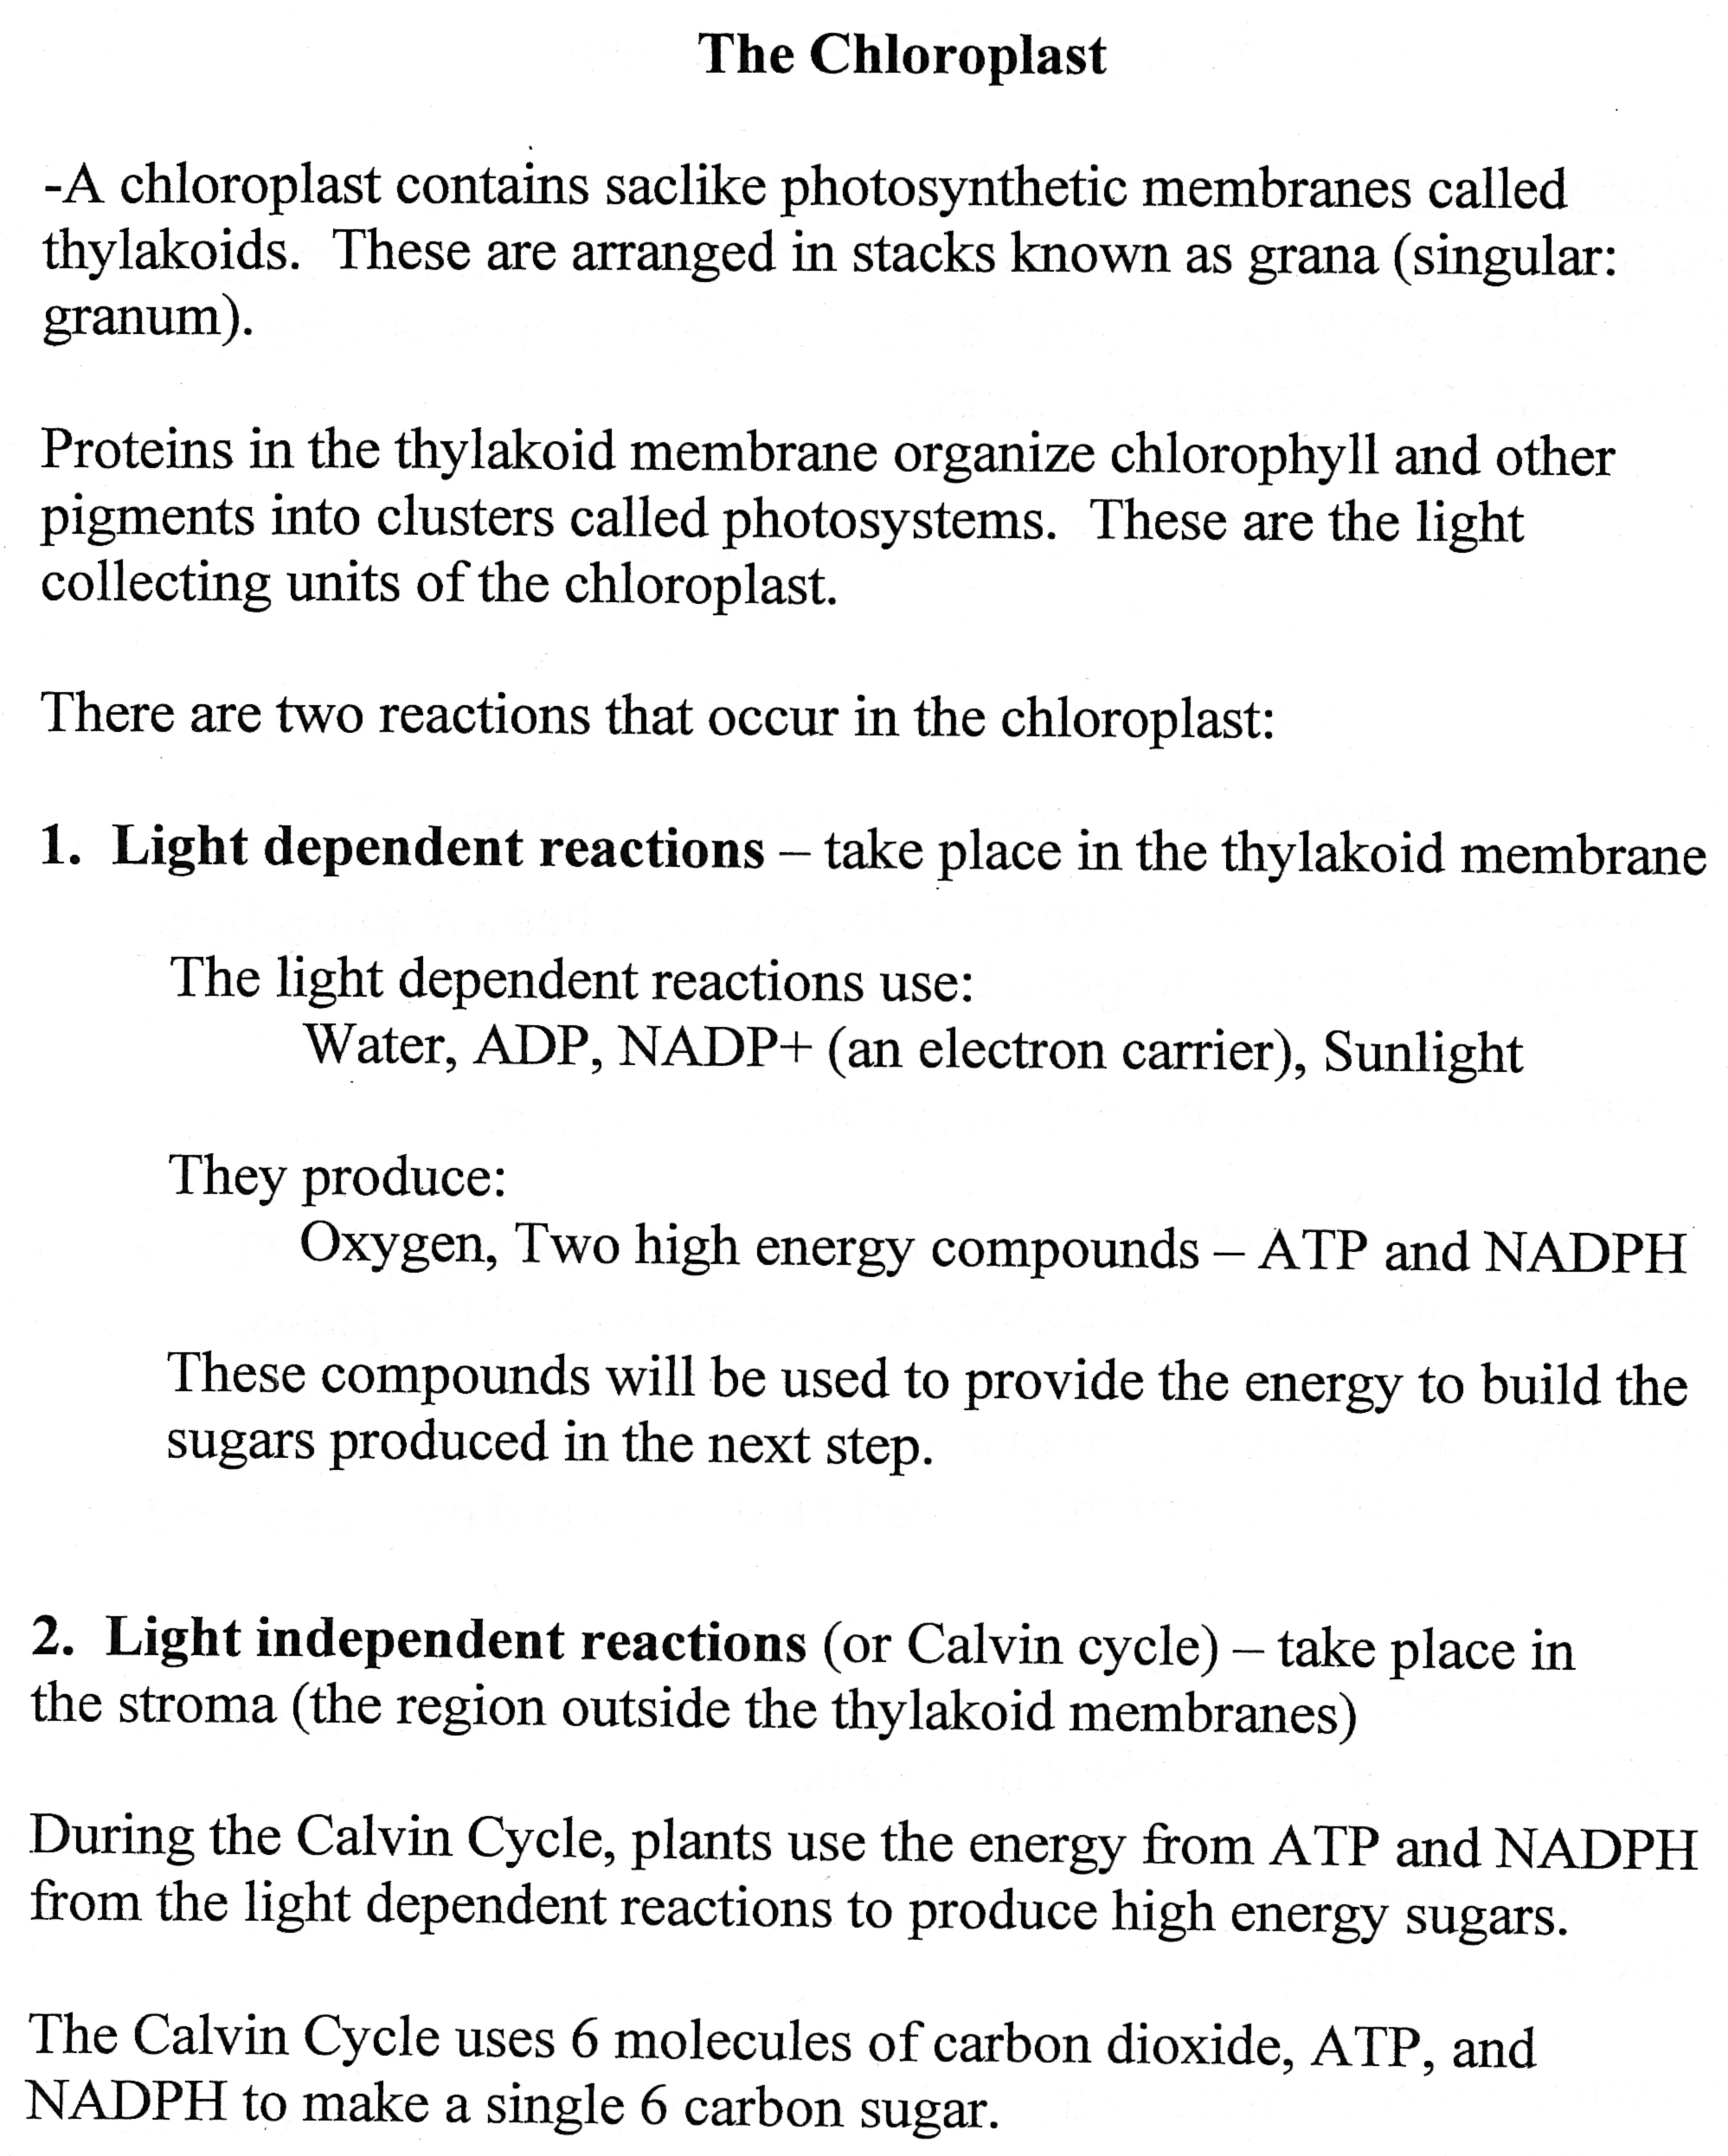 Biology Coursework Photosynthesis